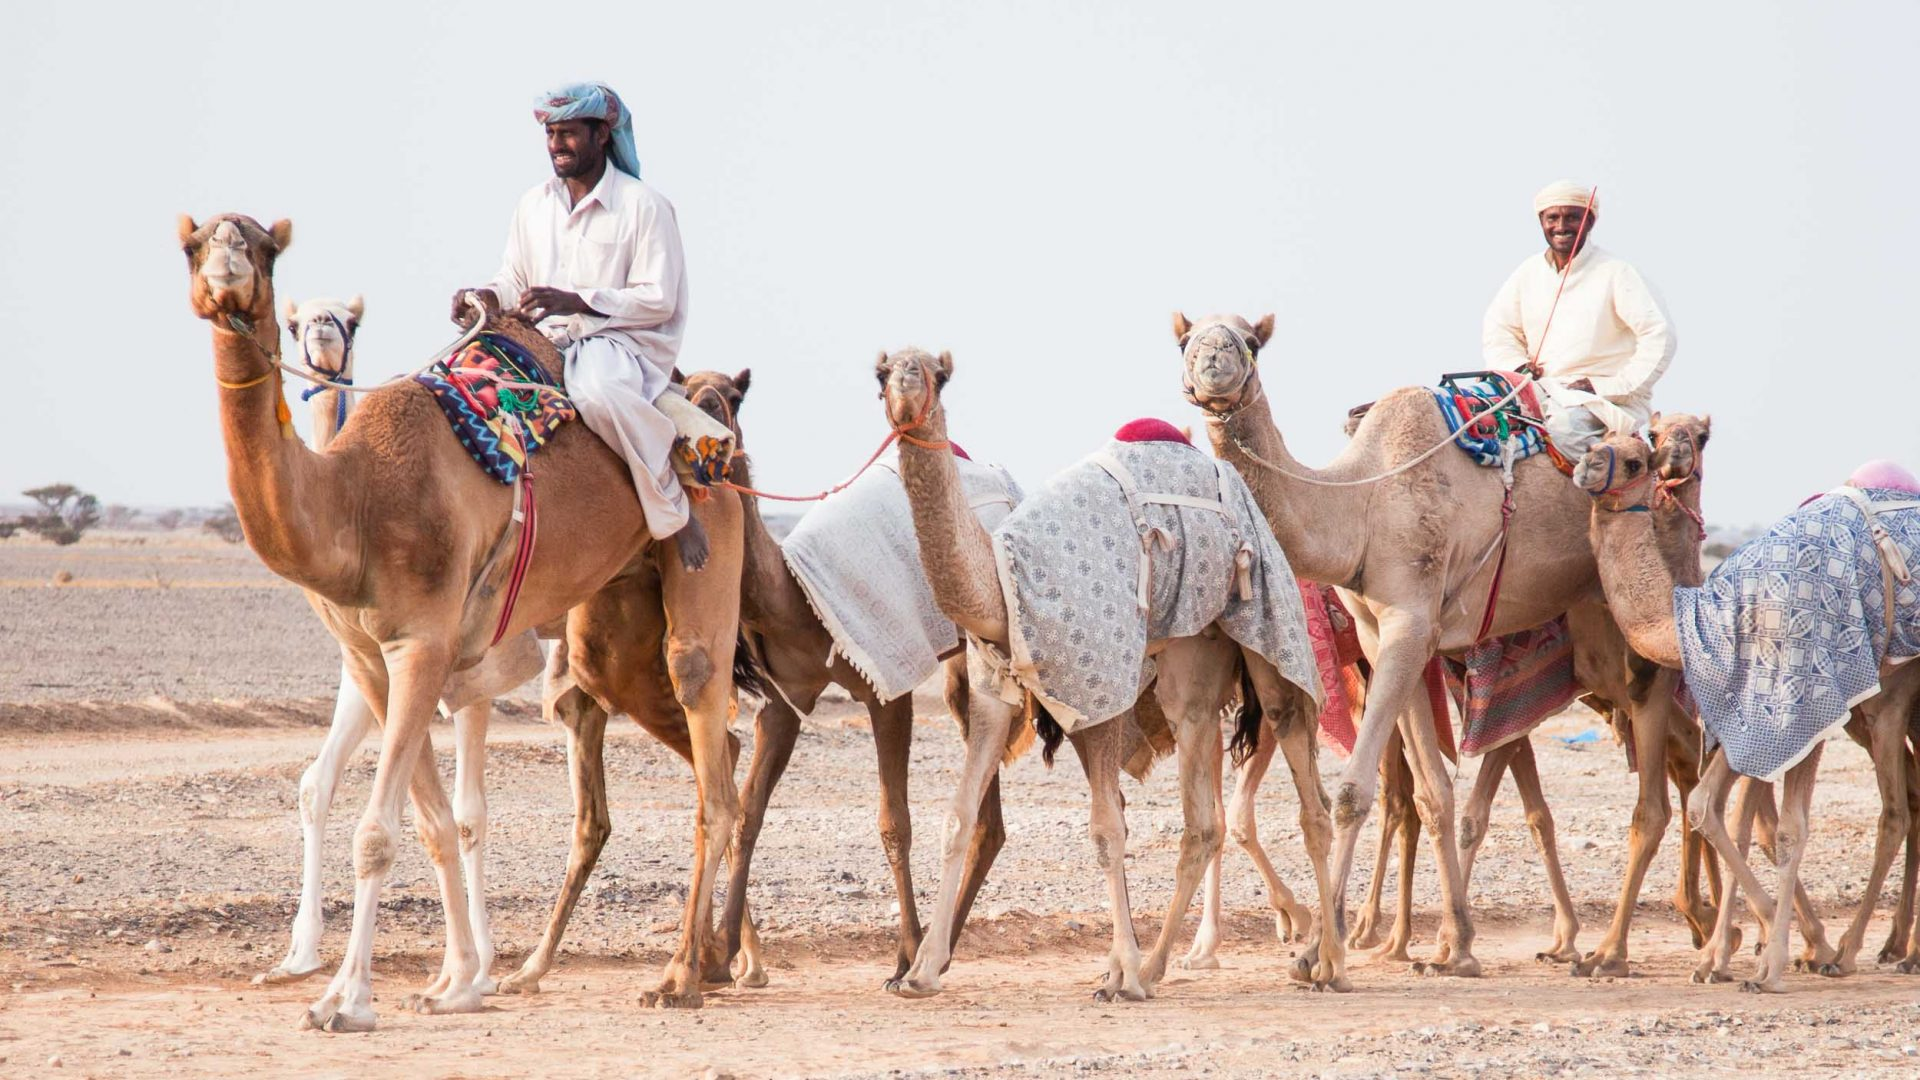 The duo come across a caravan of camels and their riders in the Empty Quarter.